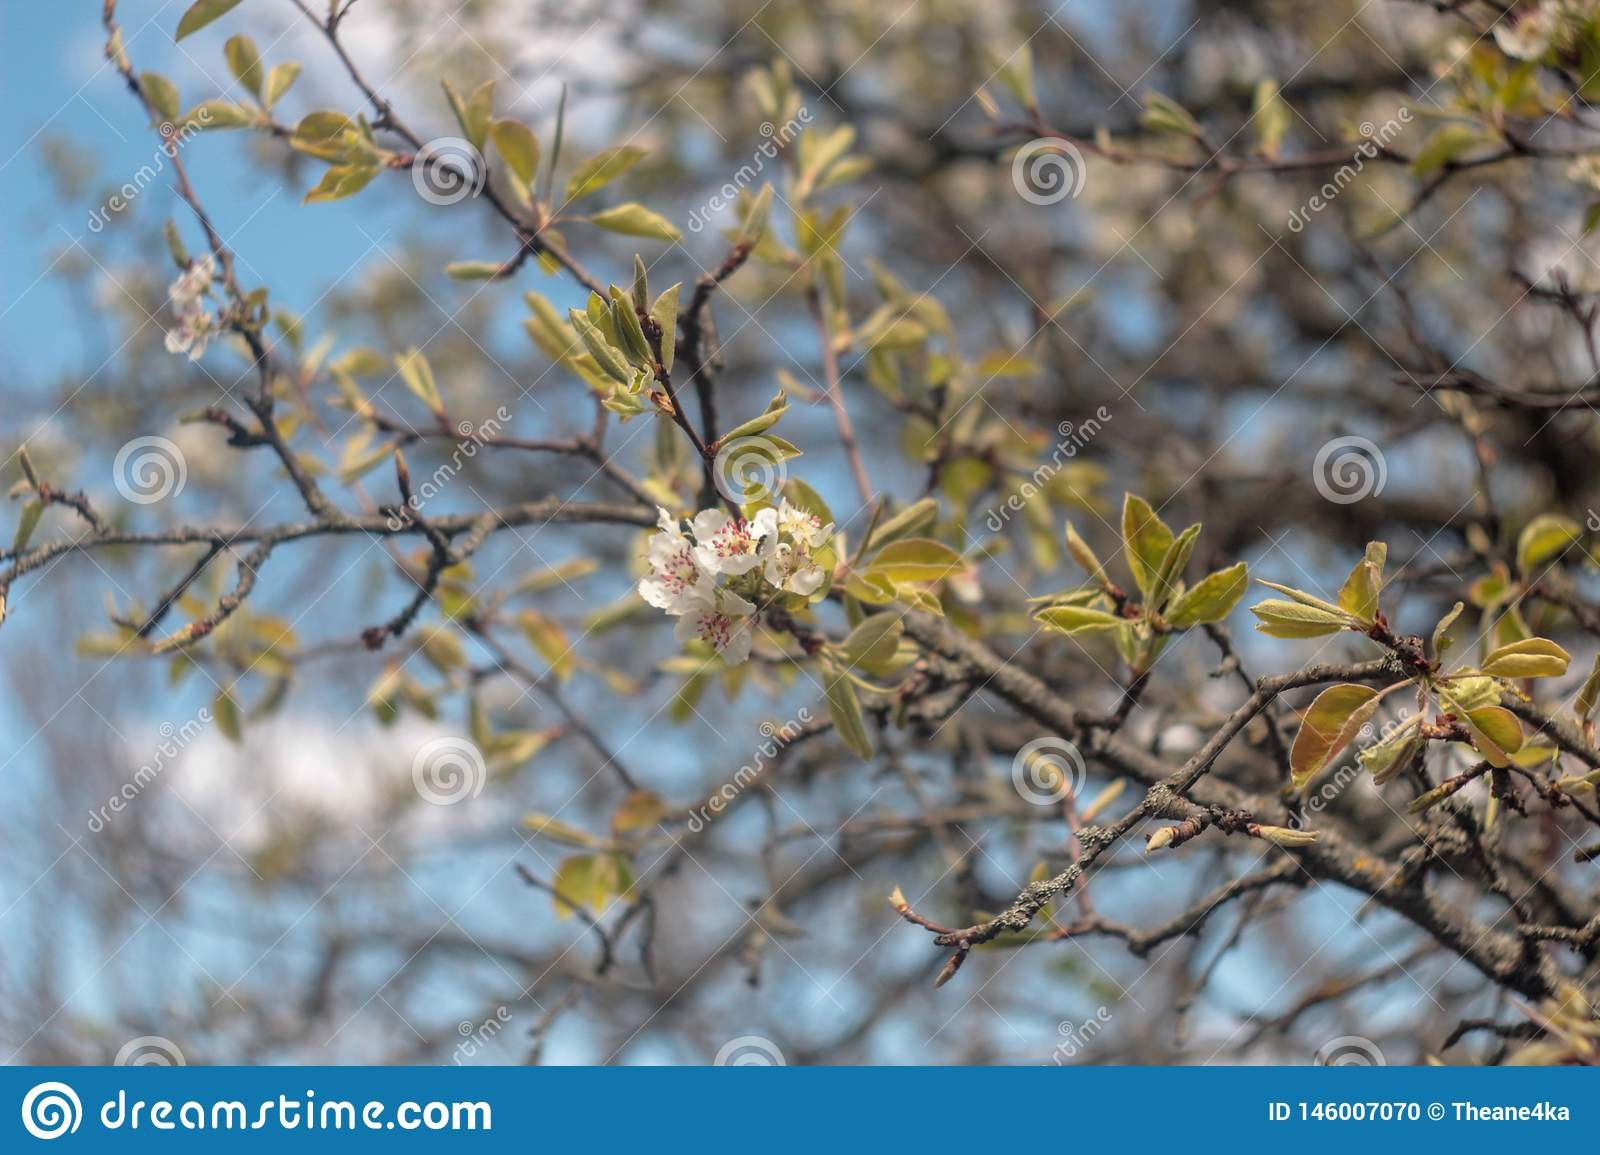 Photo of blooming pear tree